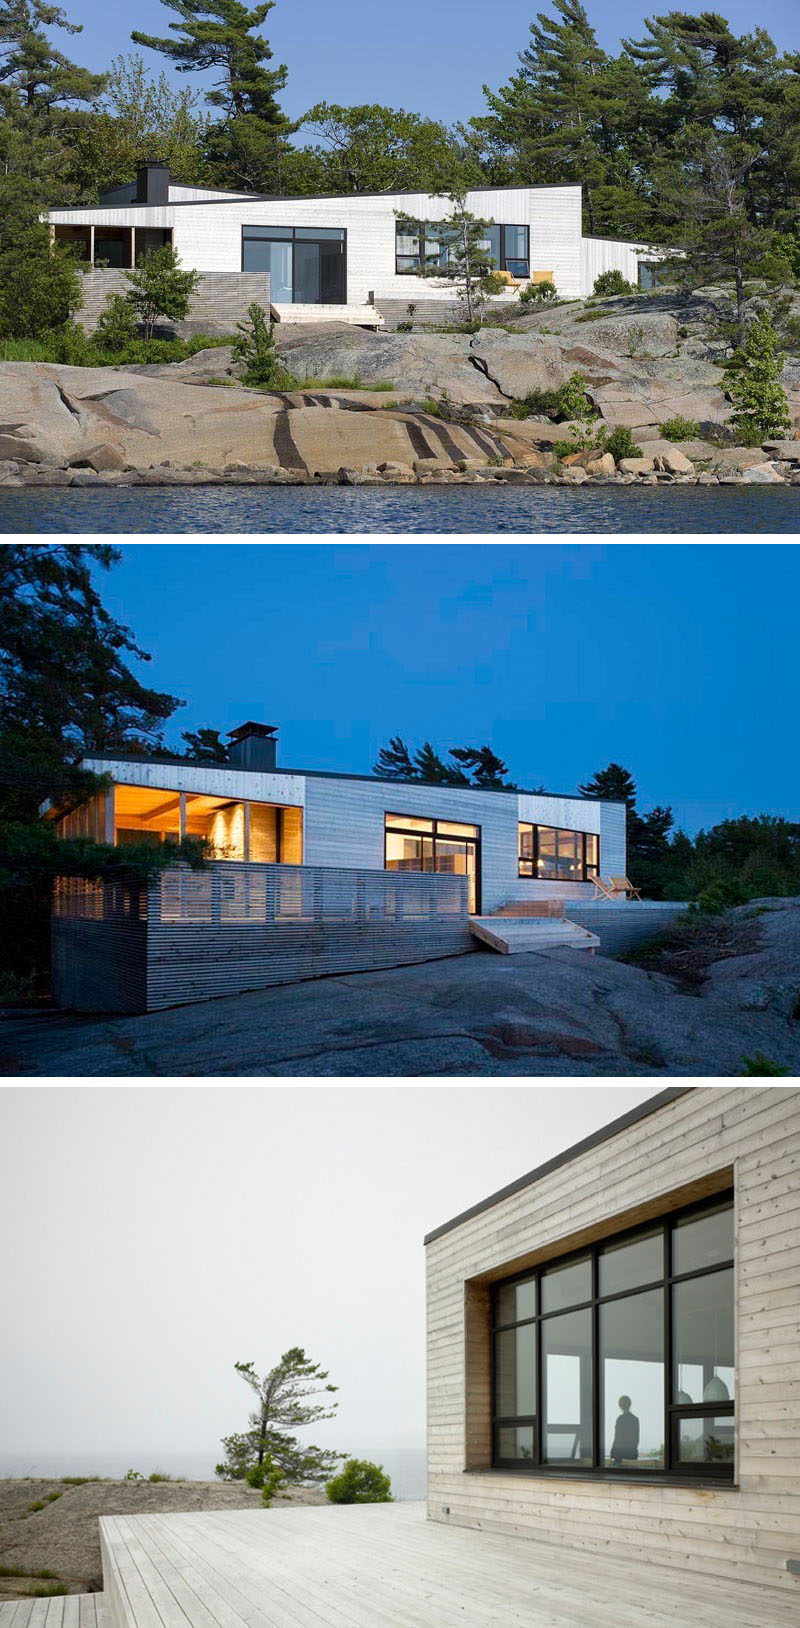 13 Totally Secluded Homes To Escape From The World // Made from local materials and built to be as non invasive as possible, this cottage in Georgian Bay, Ontario, offers beautiful views and a place to escape from everyday life.